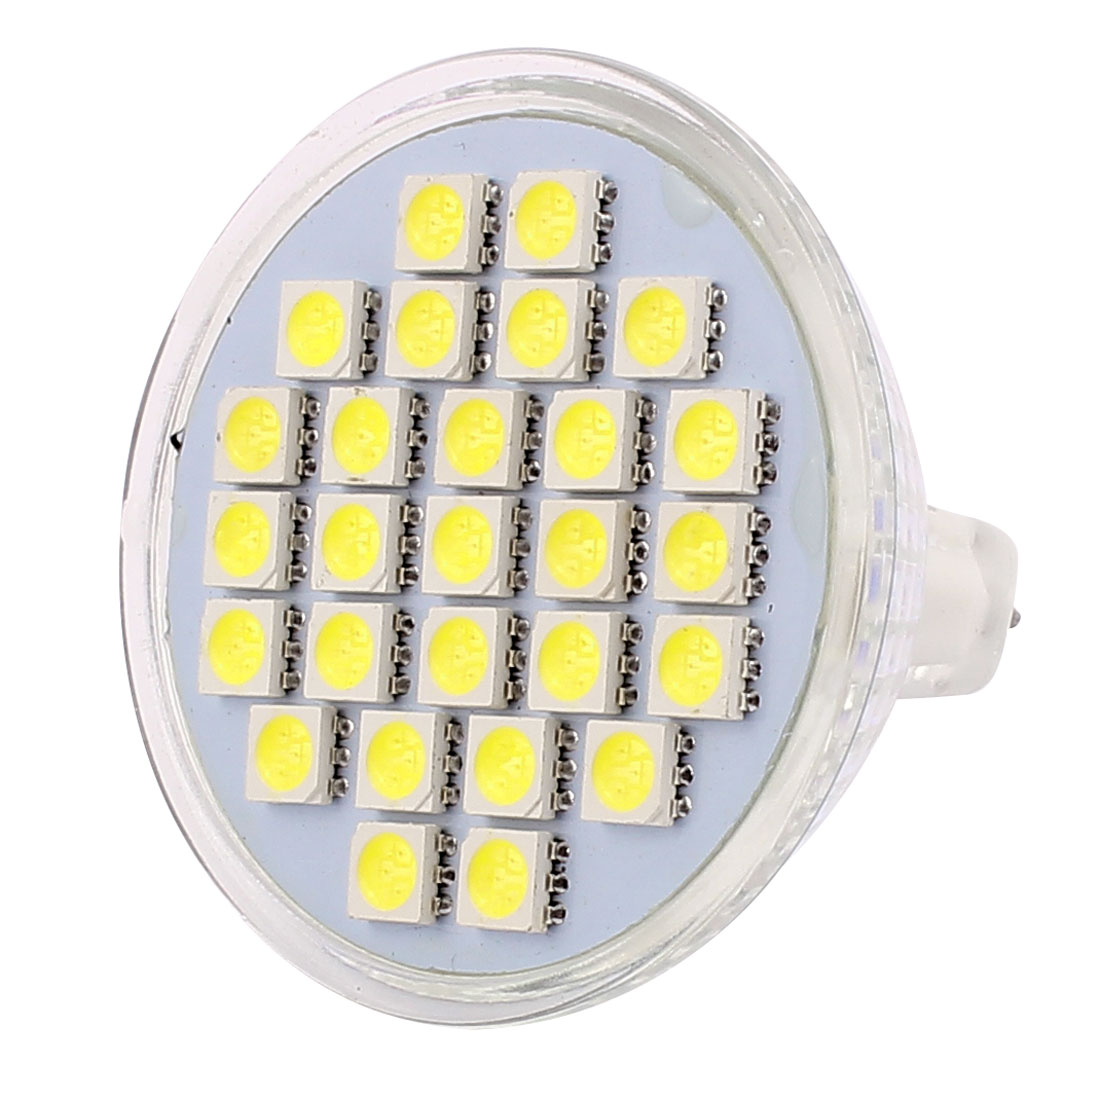 MR16 AC 220V 4W SMD5050 27LEDs Glass Energy Saving LED Lamp Bulb White